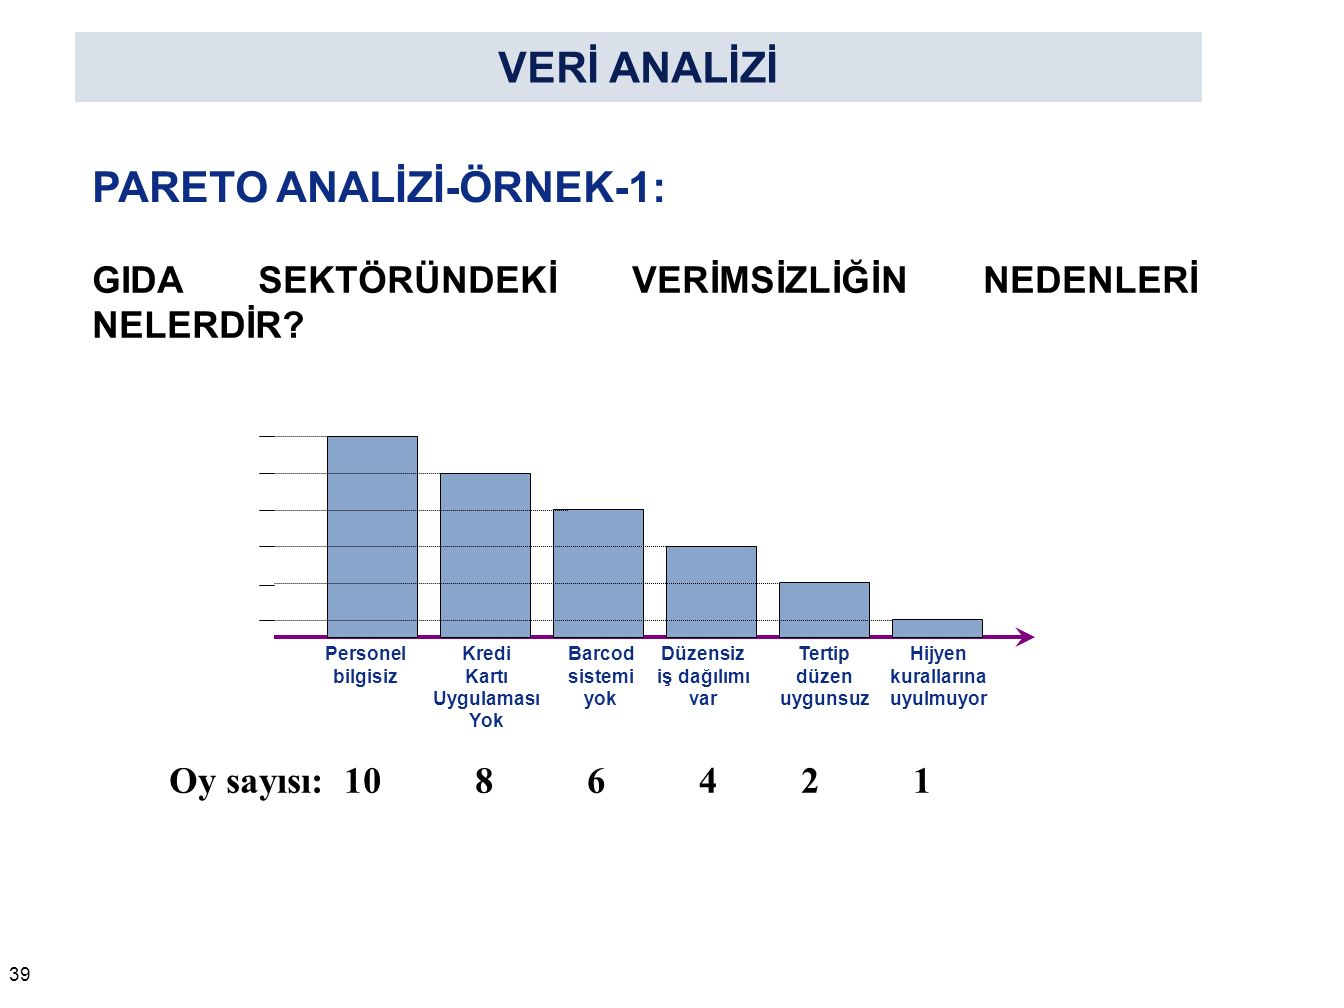 PARETO ANALİZİ-ÖRNEK-2: